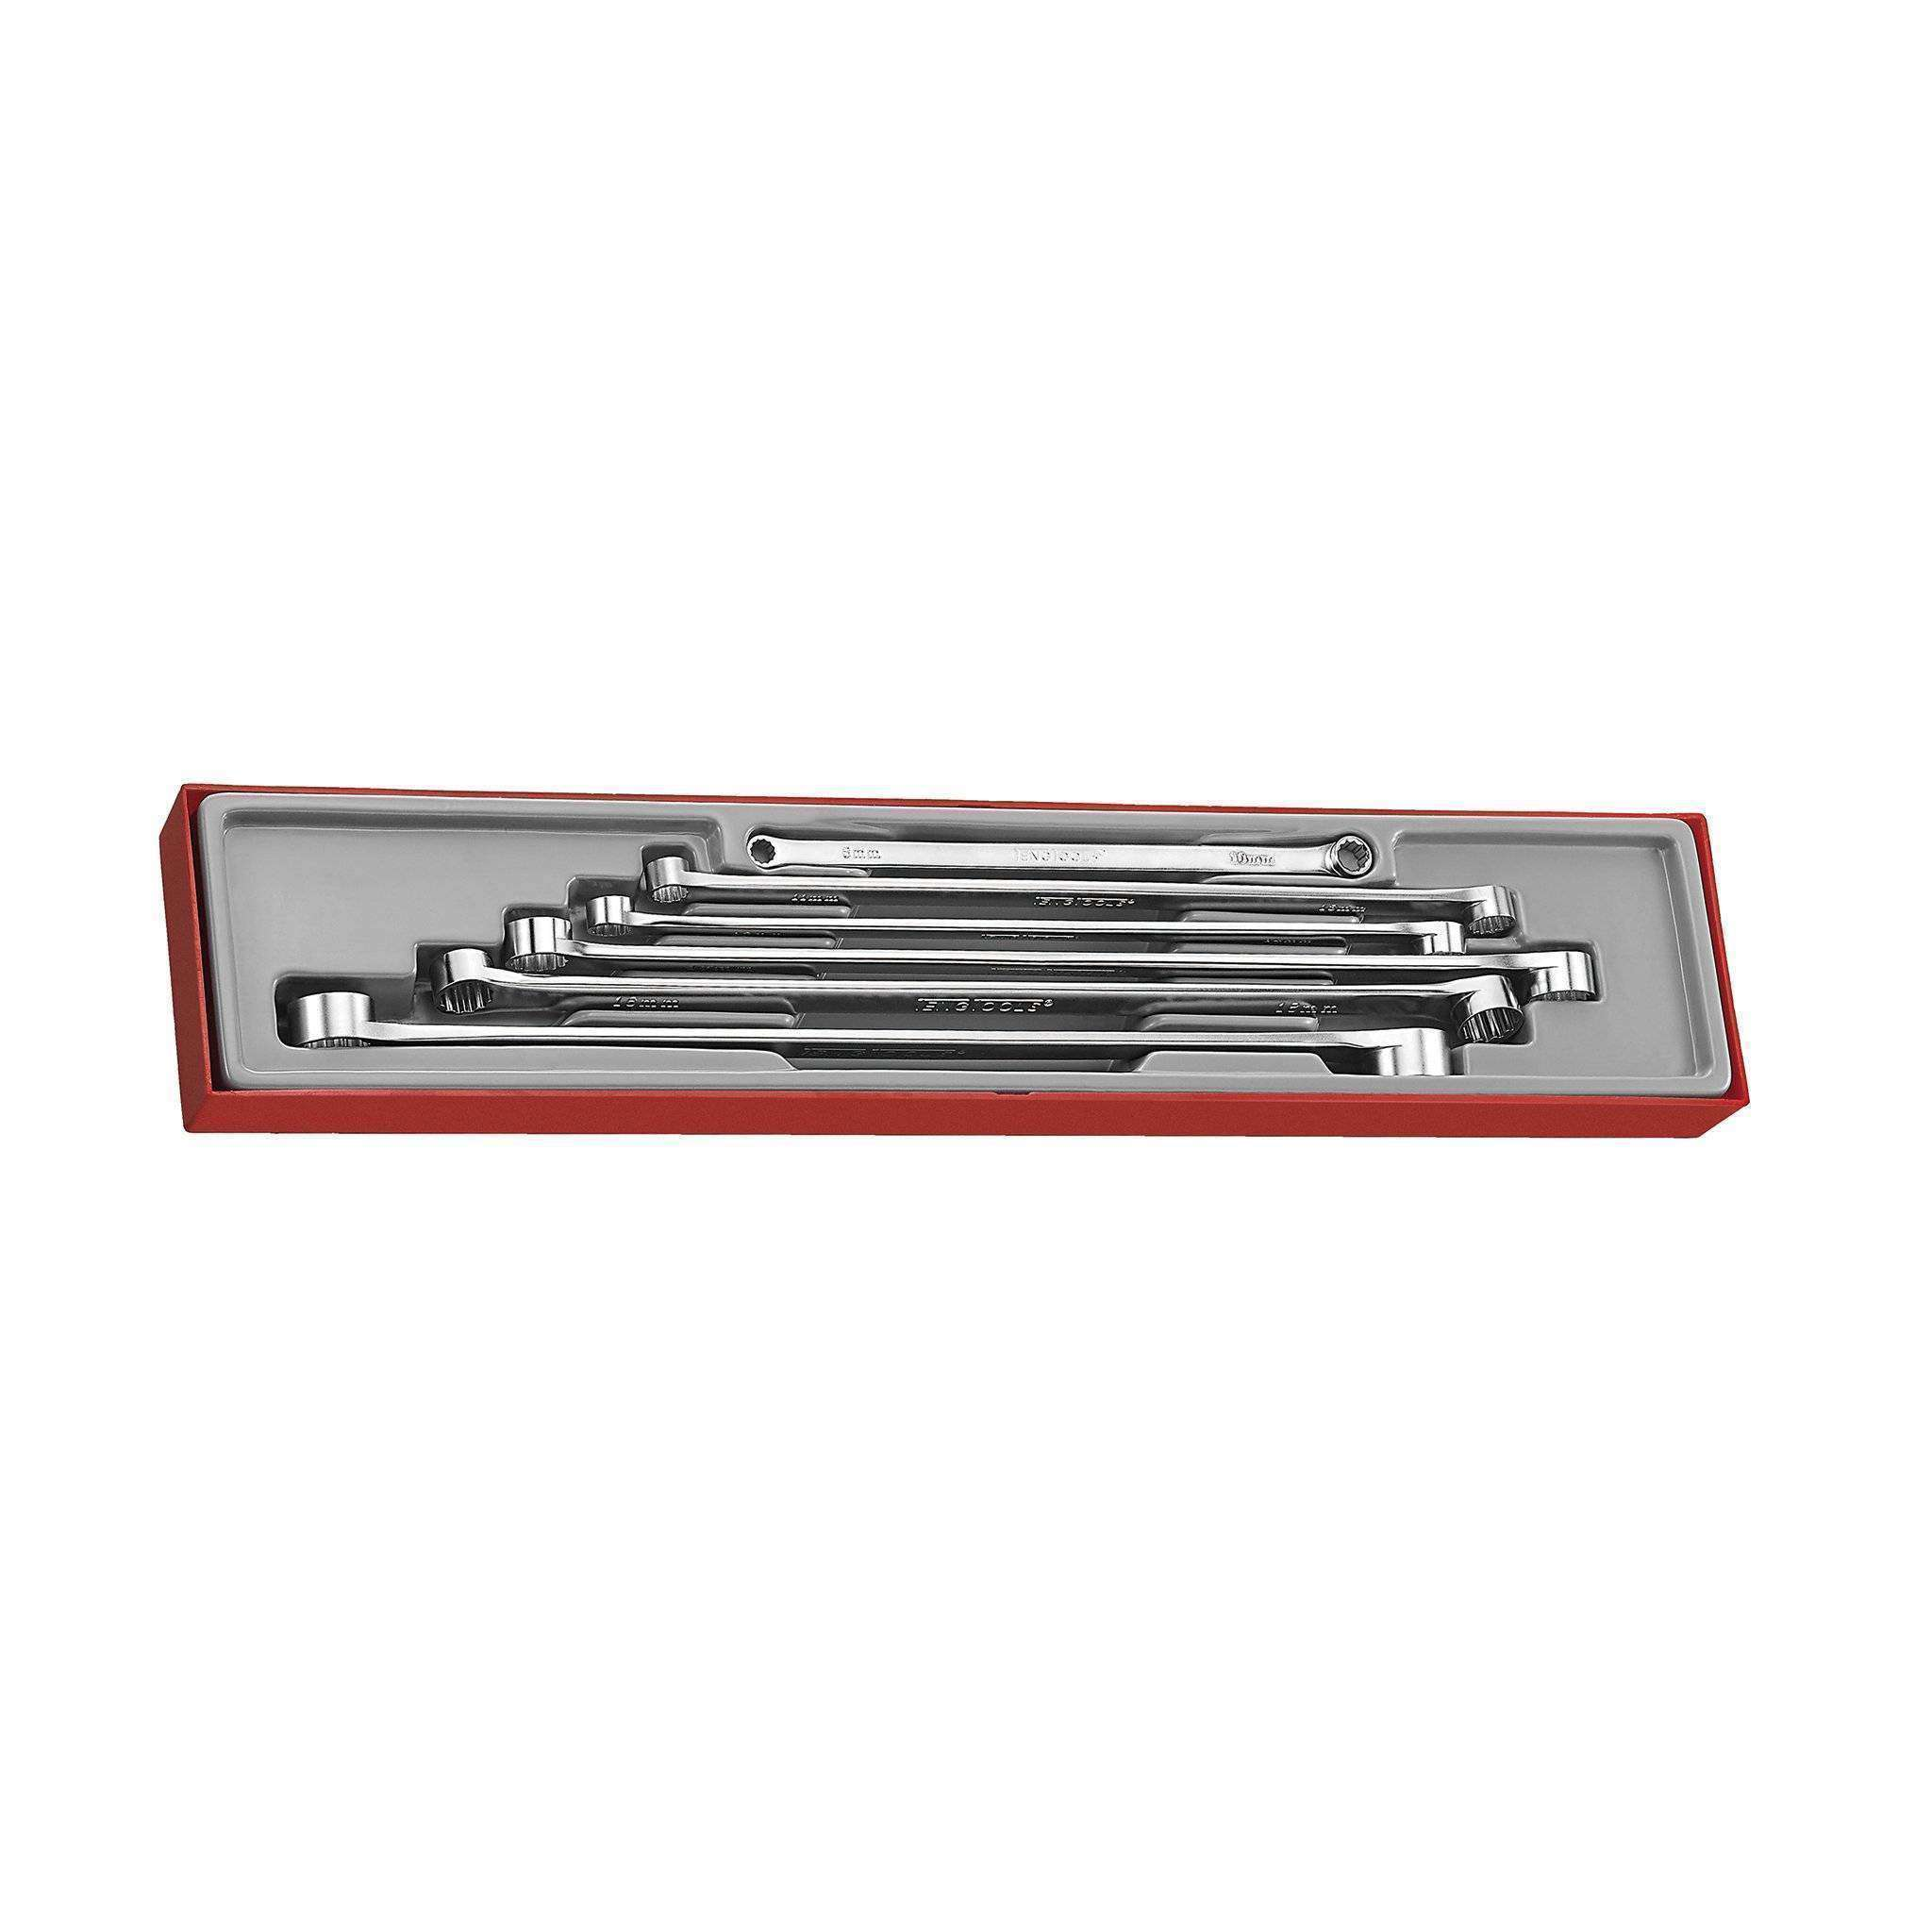 Teng Tools TTXFLS06 - 6 Piece Extra Long Box EndDouble Ring Wrench Set - Teng Tools USA